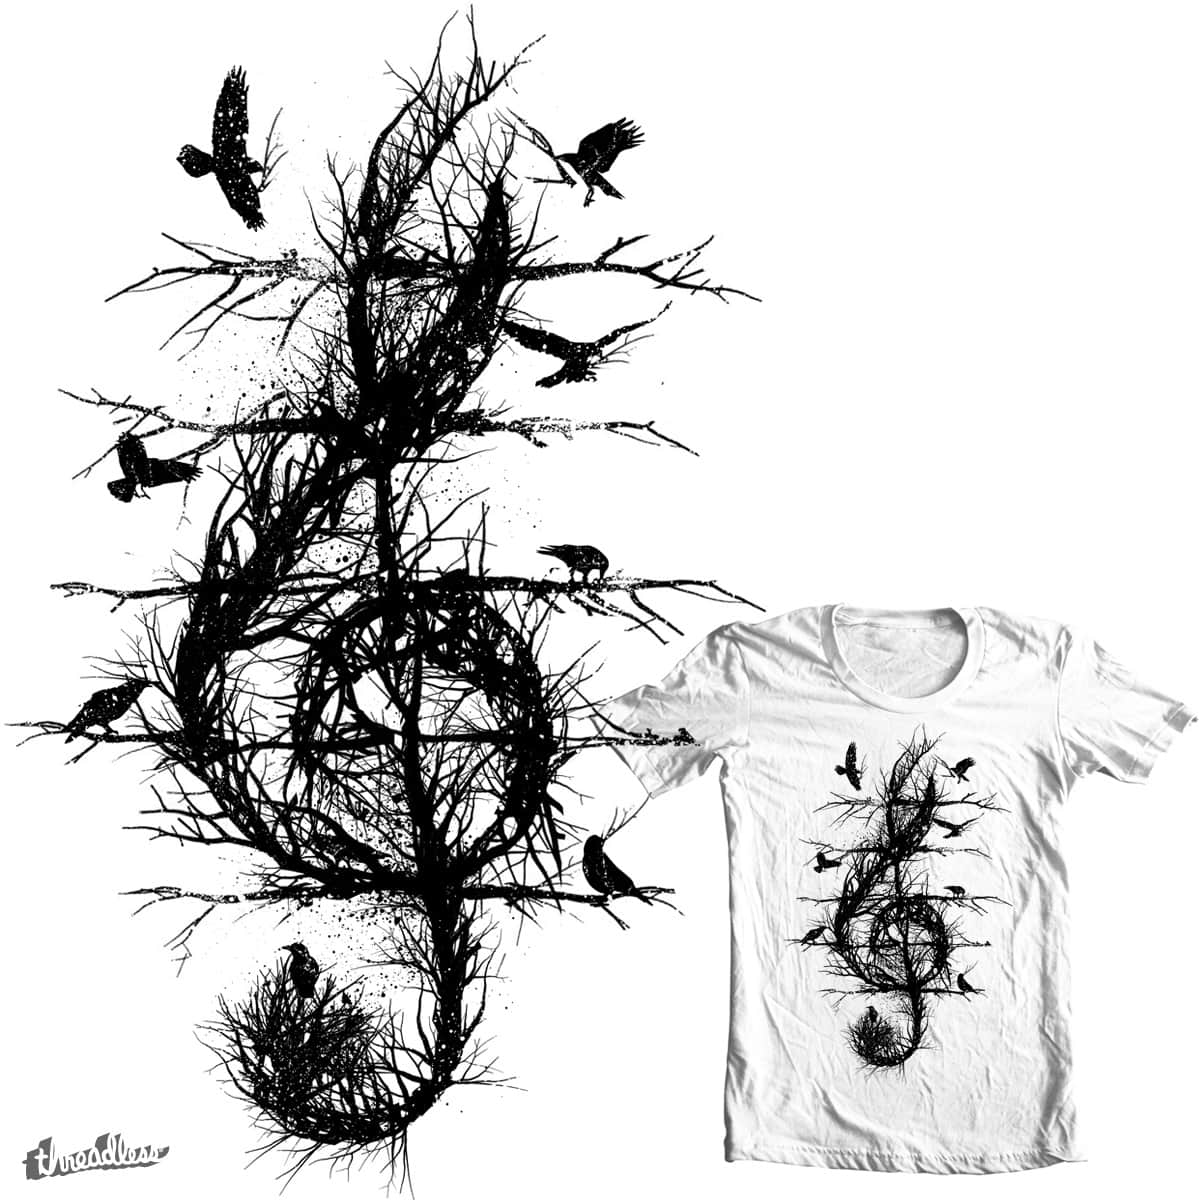 raven soprano by dilematiccoma on Threadless